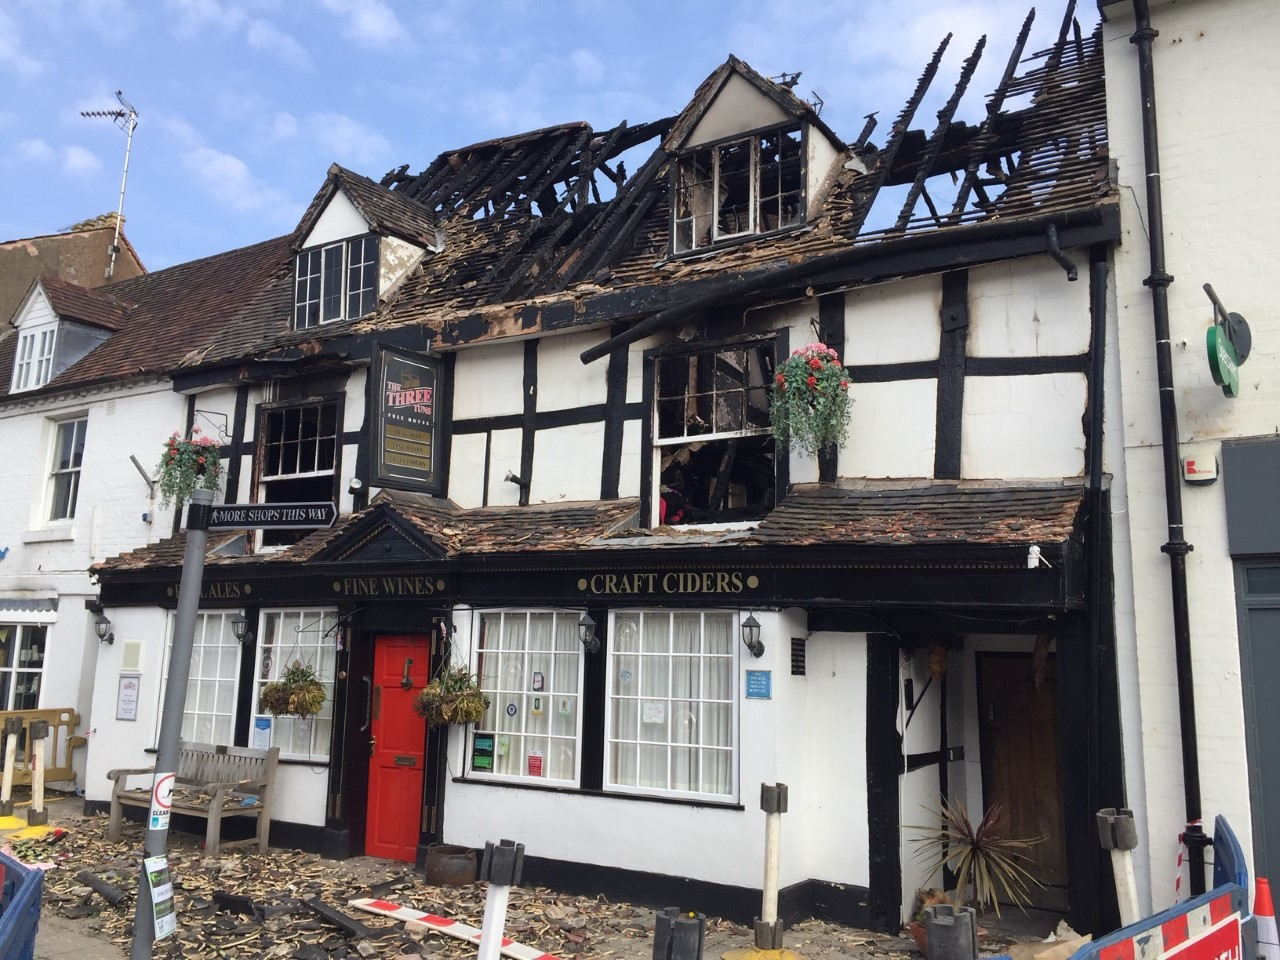 The aftermath of the fire at The Three Tuns pub on Alcester High Street